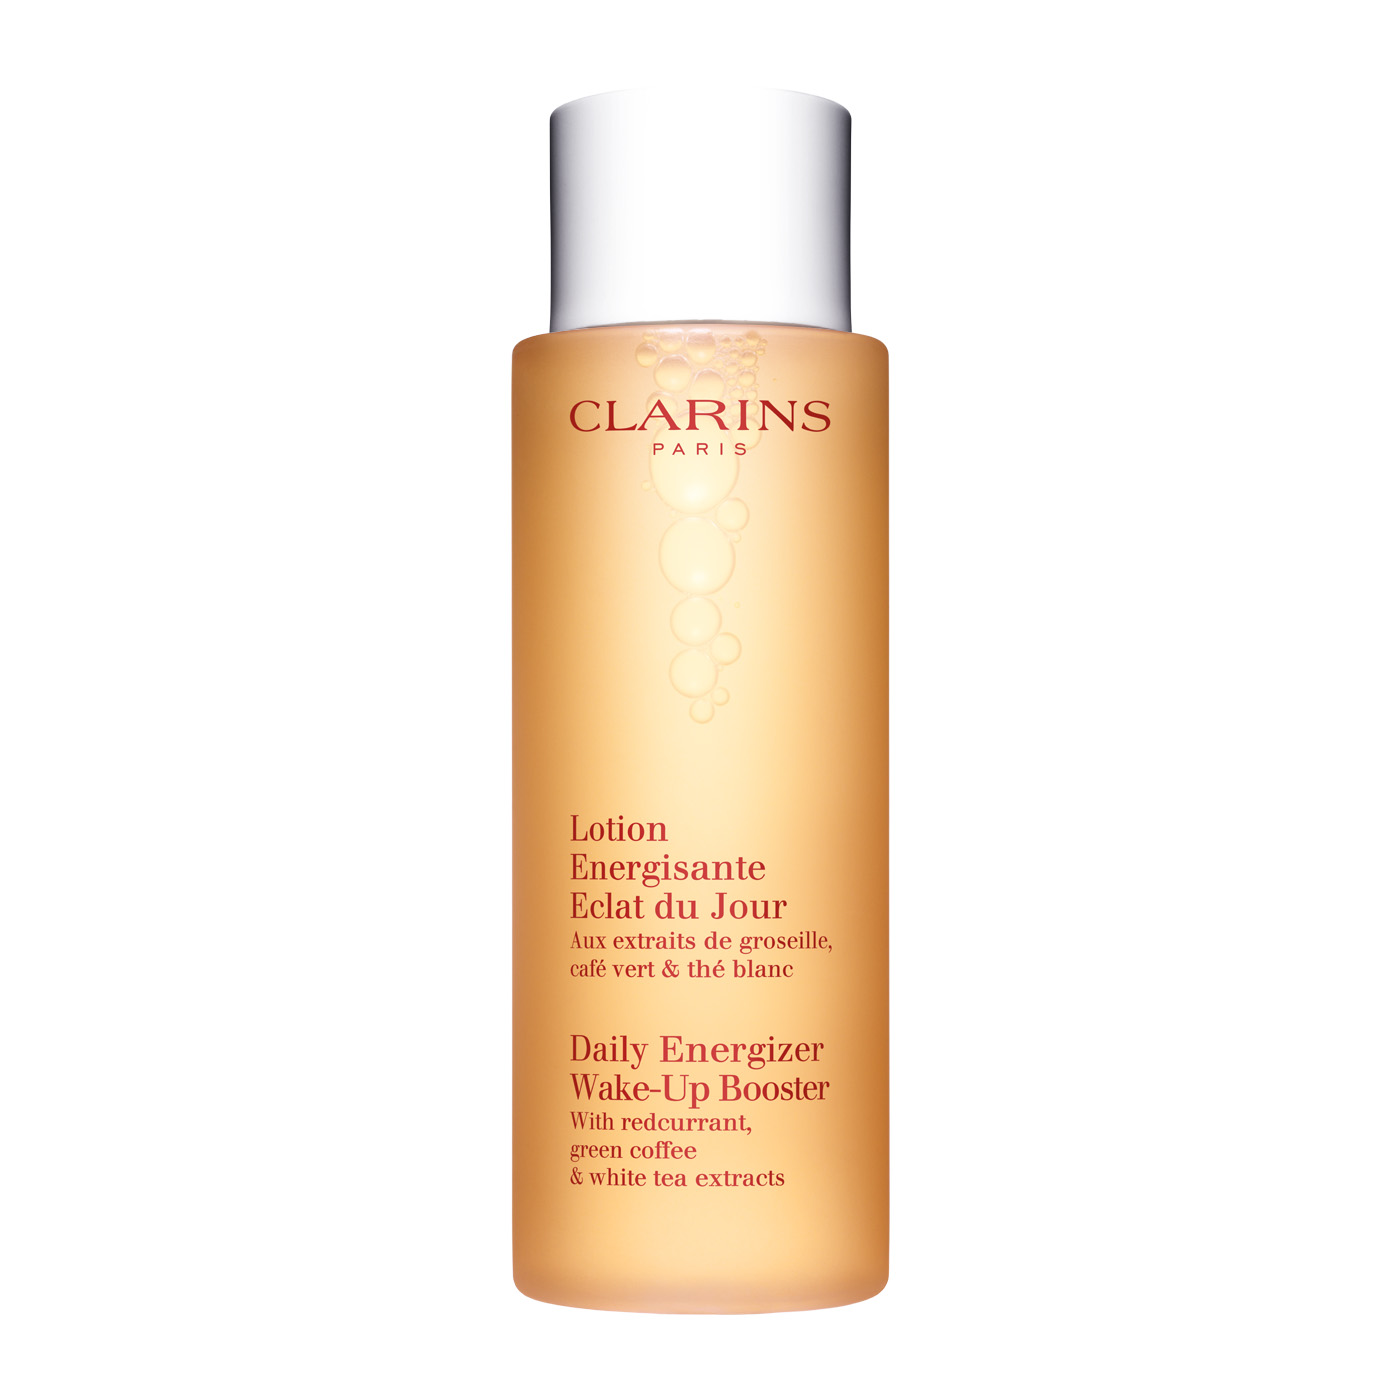 Daily Energizer Cleansing Gel by Clarins #18